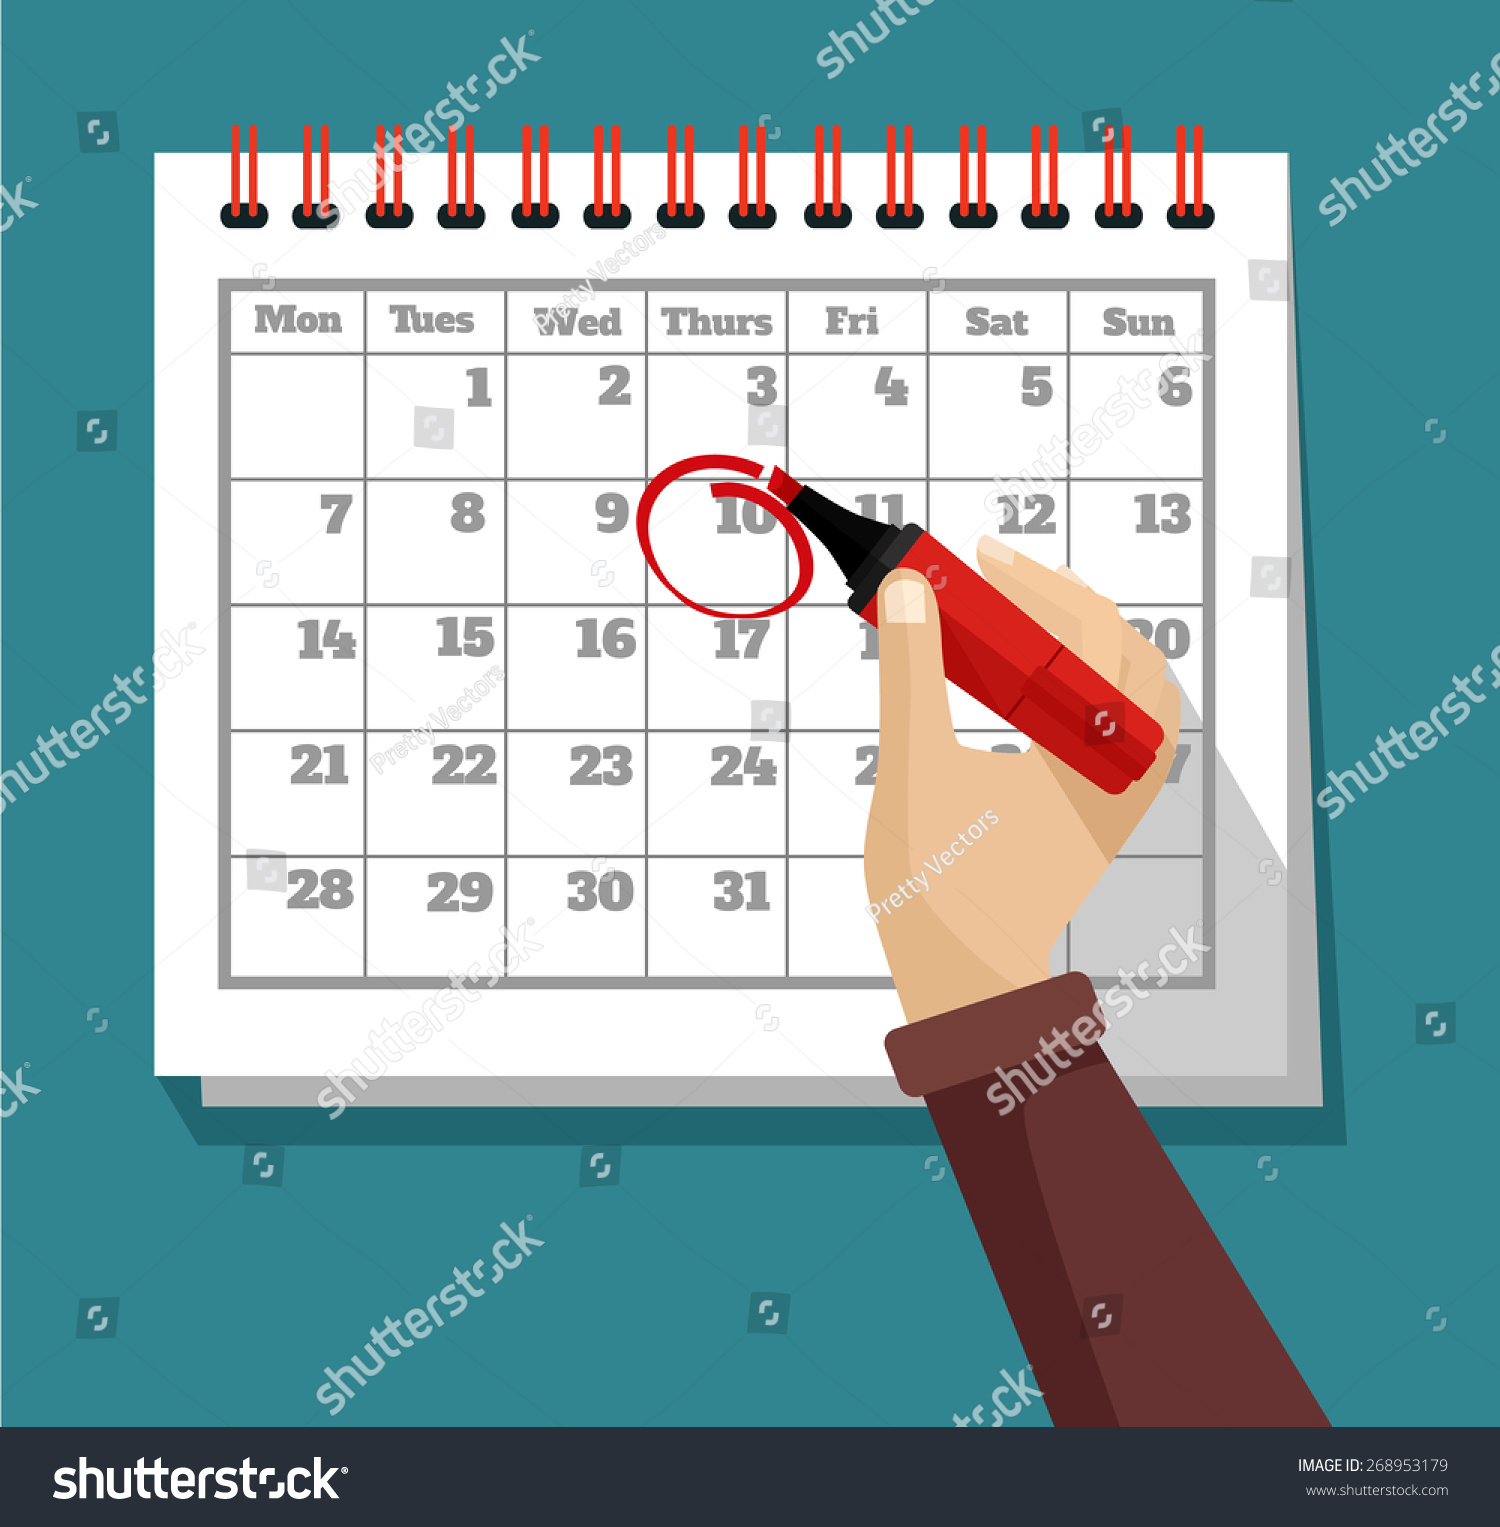 Calendar Illustration Vector : Vector flat calendar illustration shutterstock